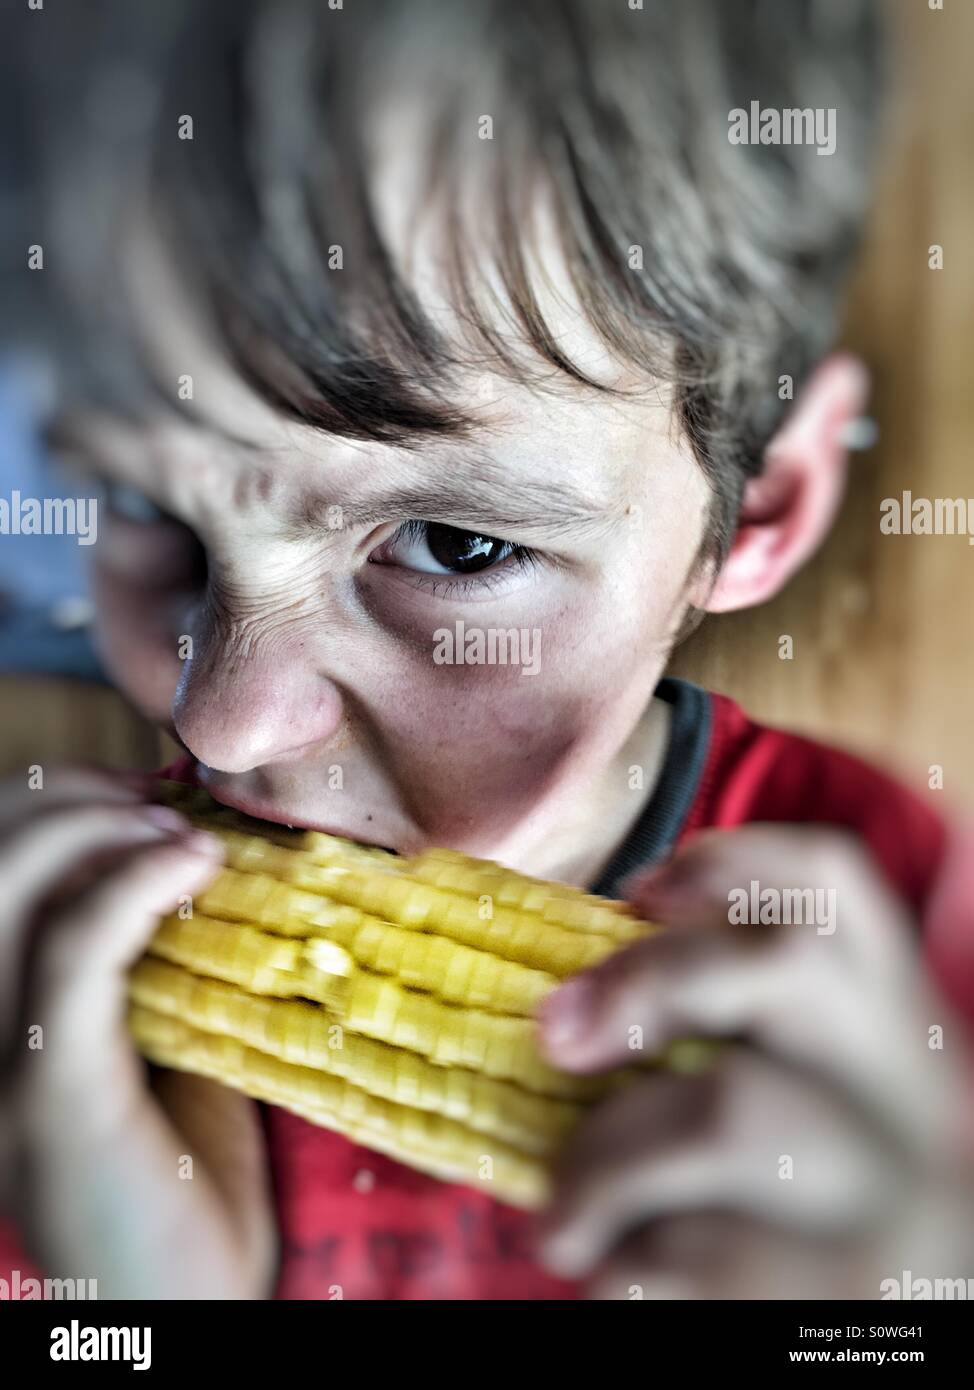 Boy eating corn on the cob - Stock Image